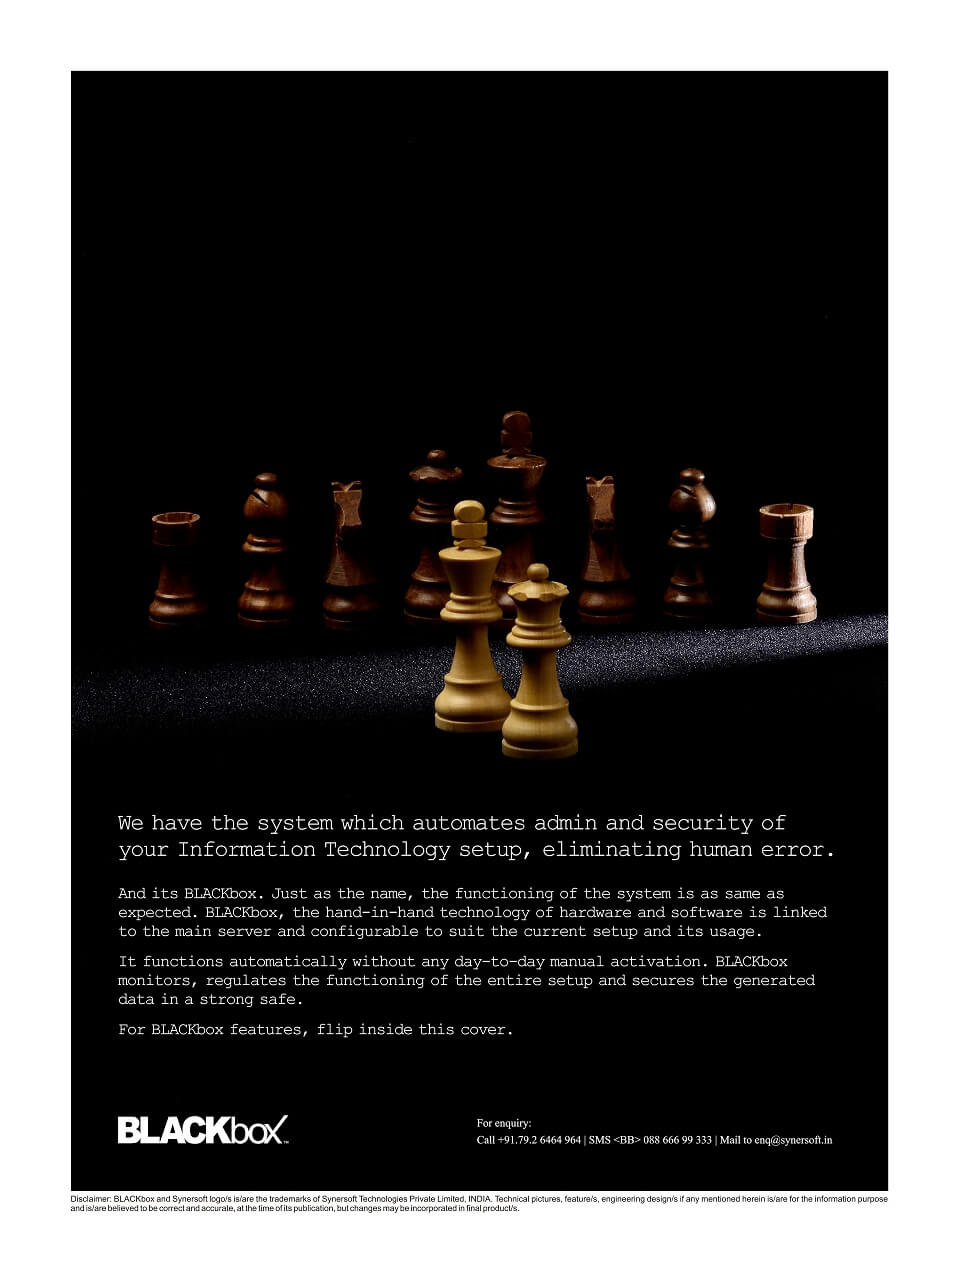 blackbox-conc-fortune-oct2011-backcover